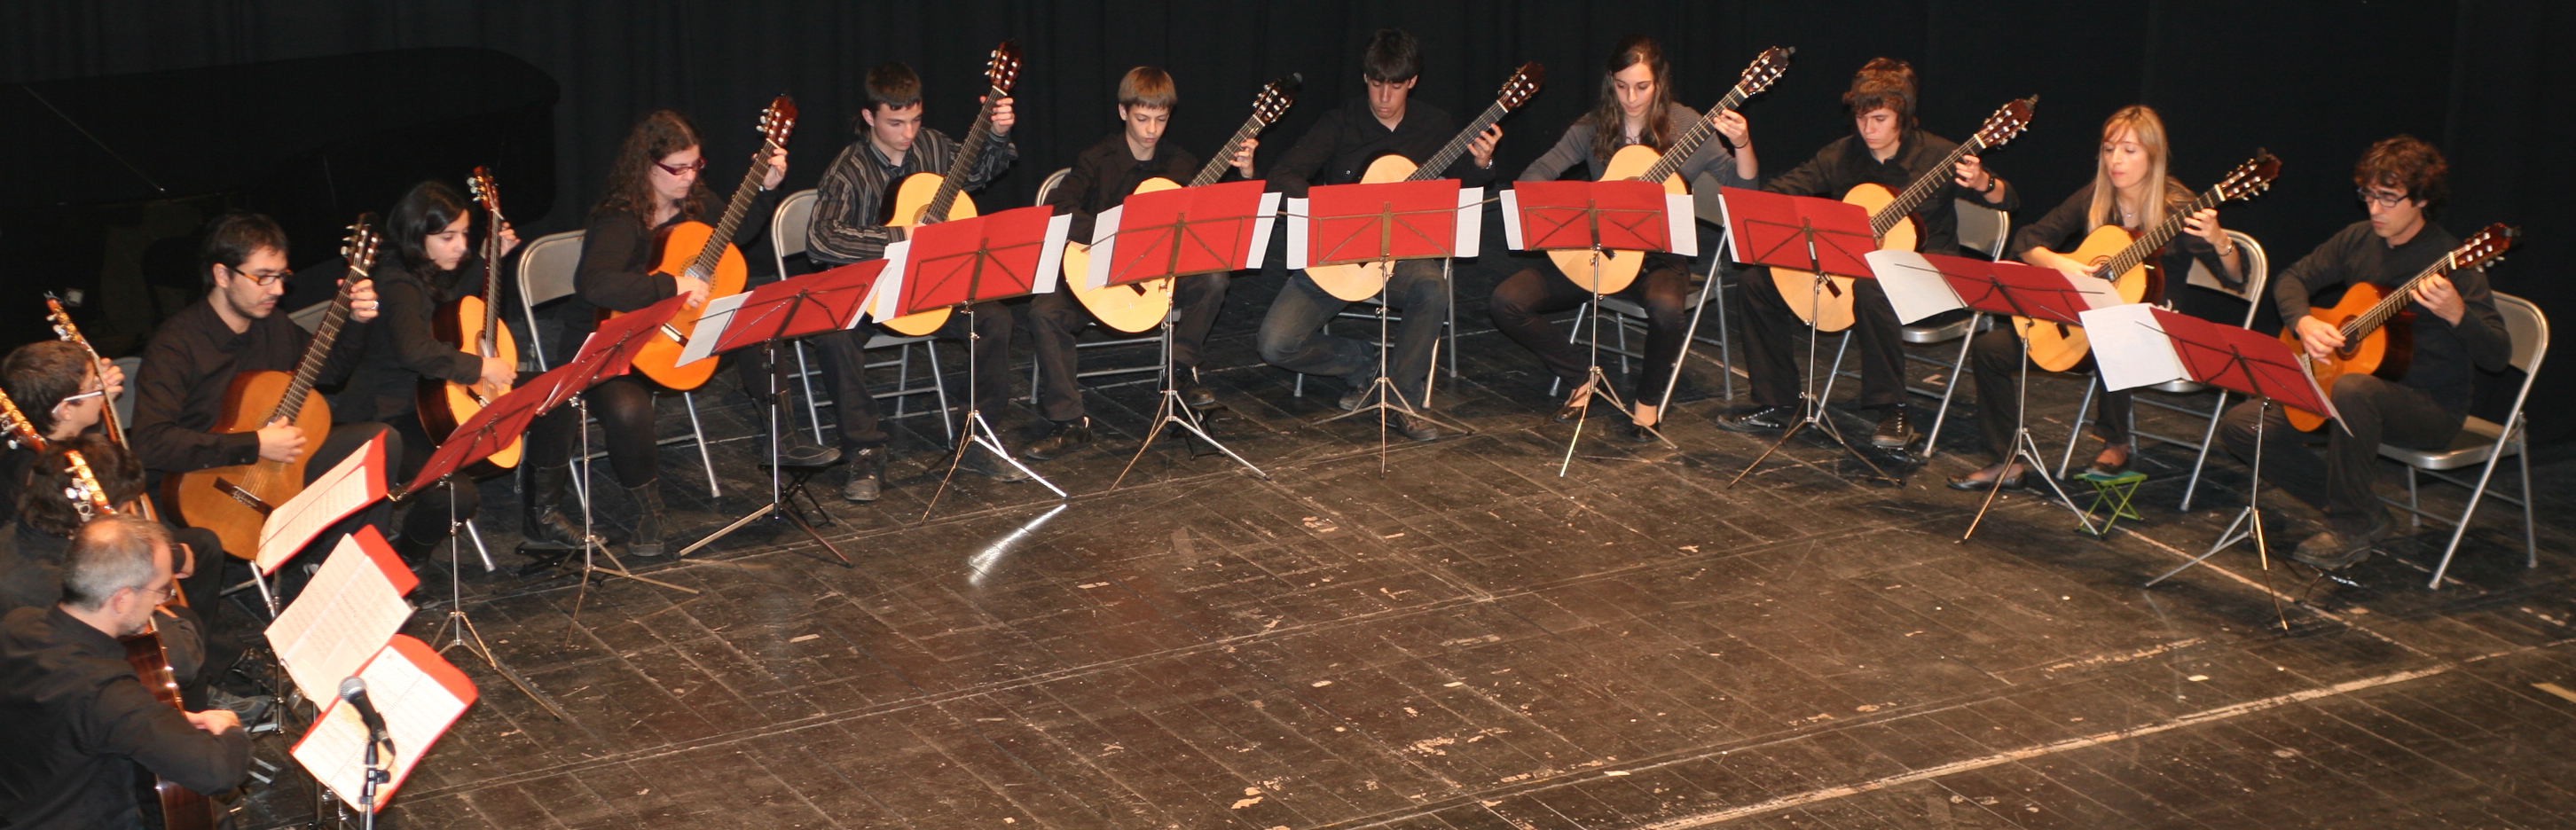 Orquestra de Guitarres